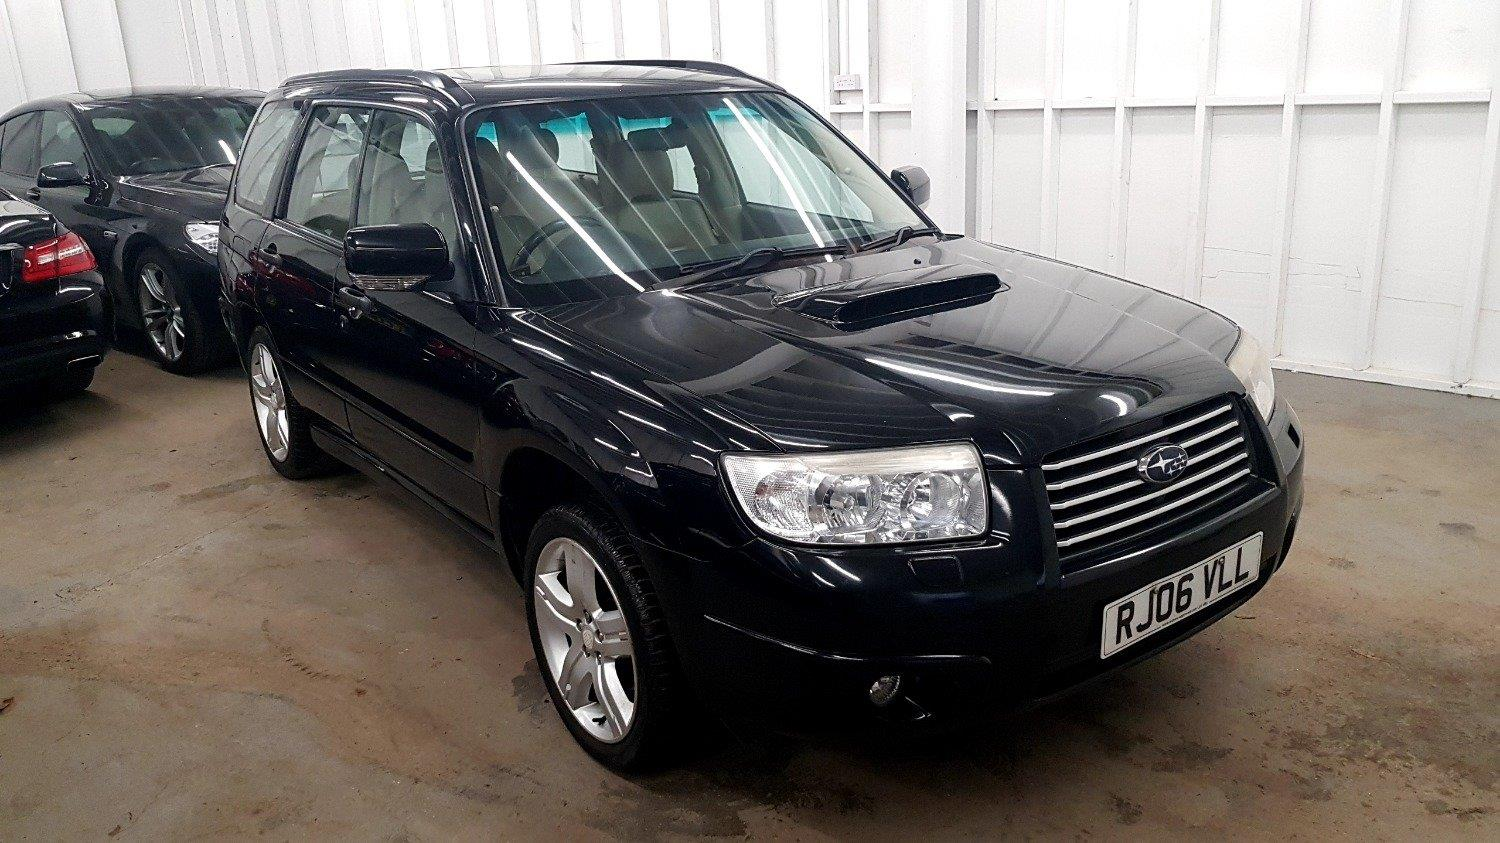 subaru forester 2.5 i touring owner manual